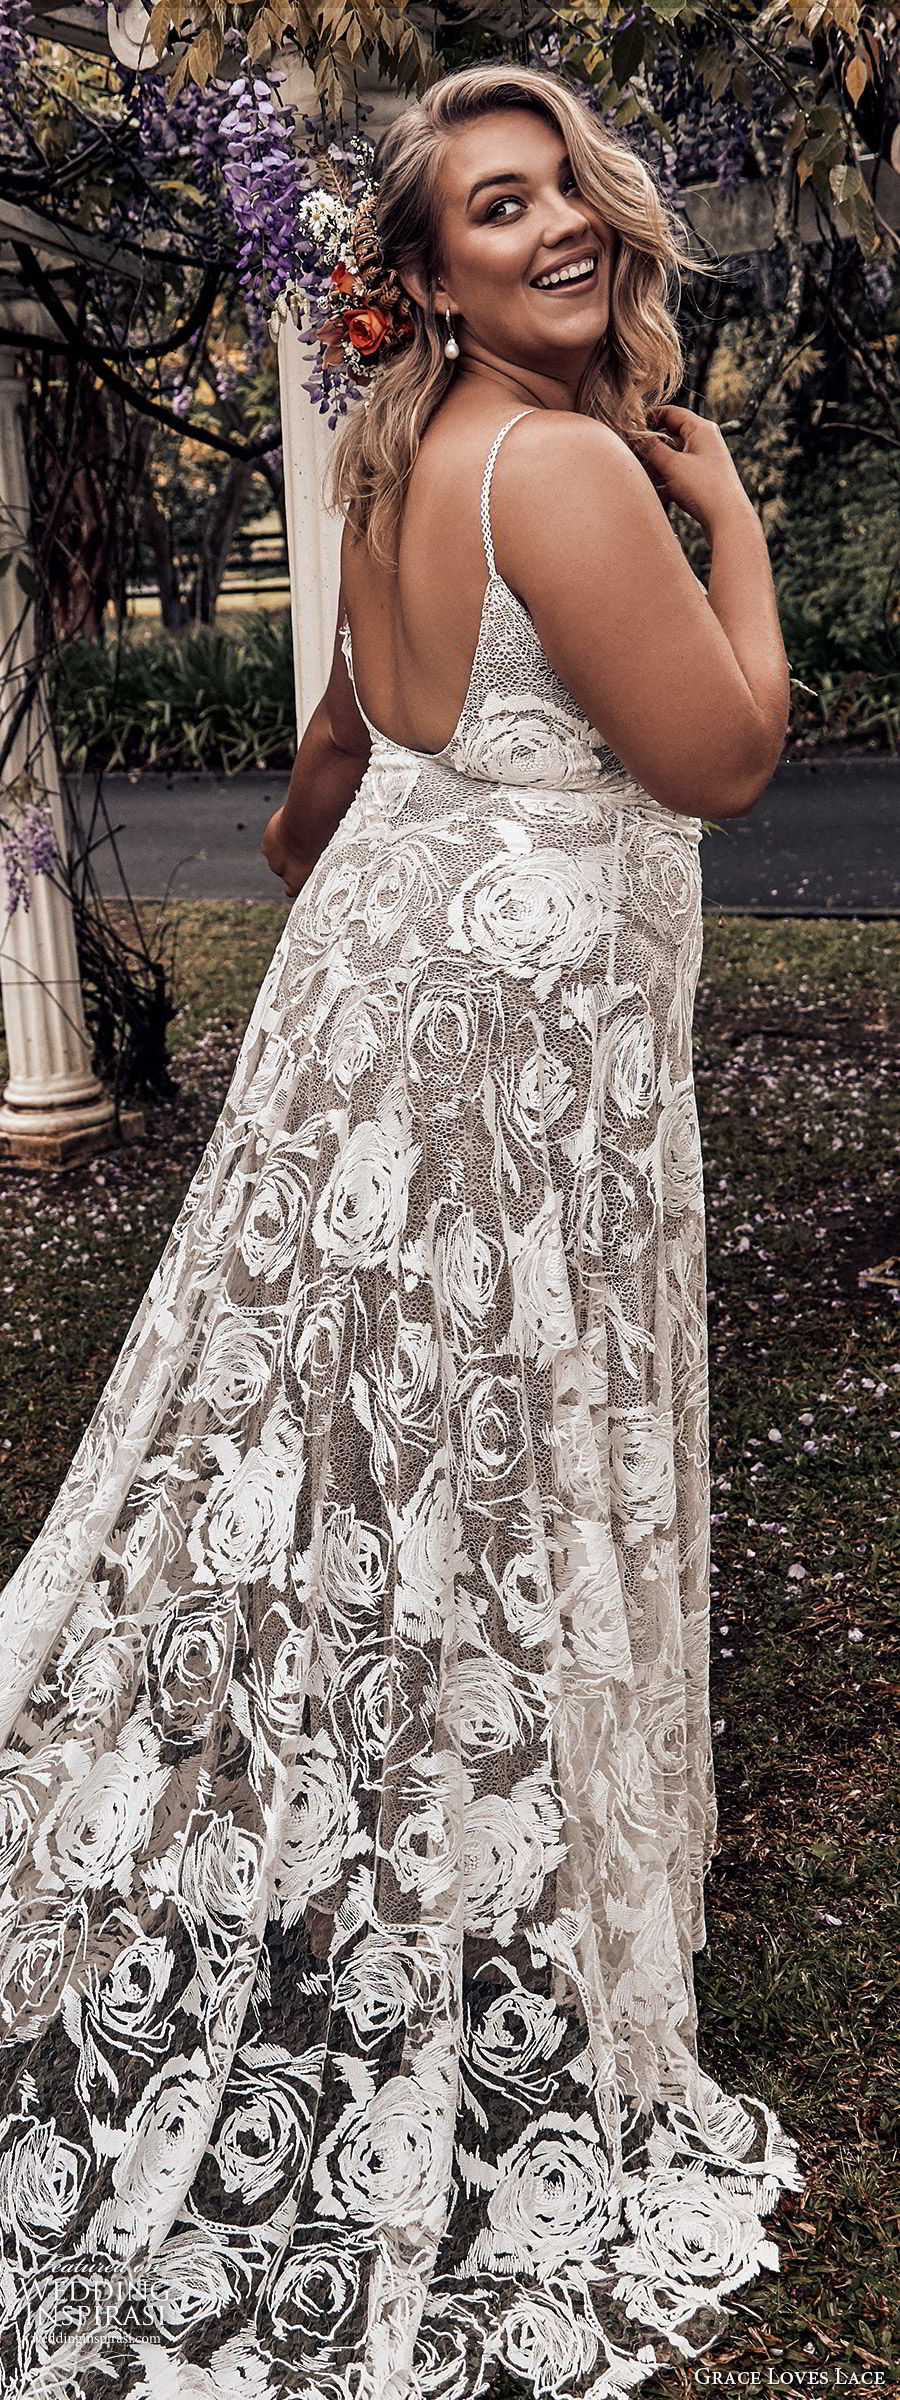 grace loves lace 2019 bridal sleeveless thin straps sweetheart necklines embellished lace soft a line trumpet wedding dress chapel train scoop back plus size bhoho romantic (6) zbv